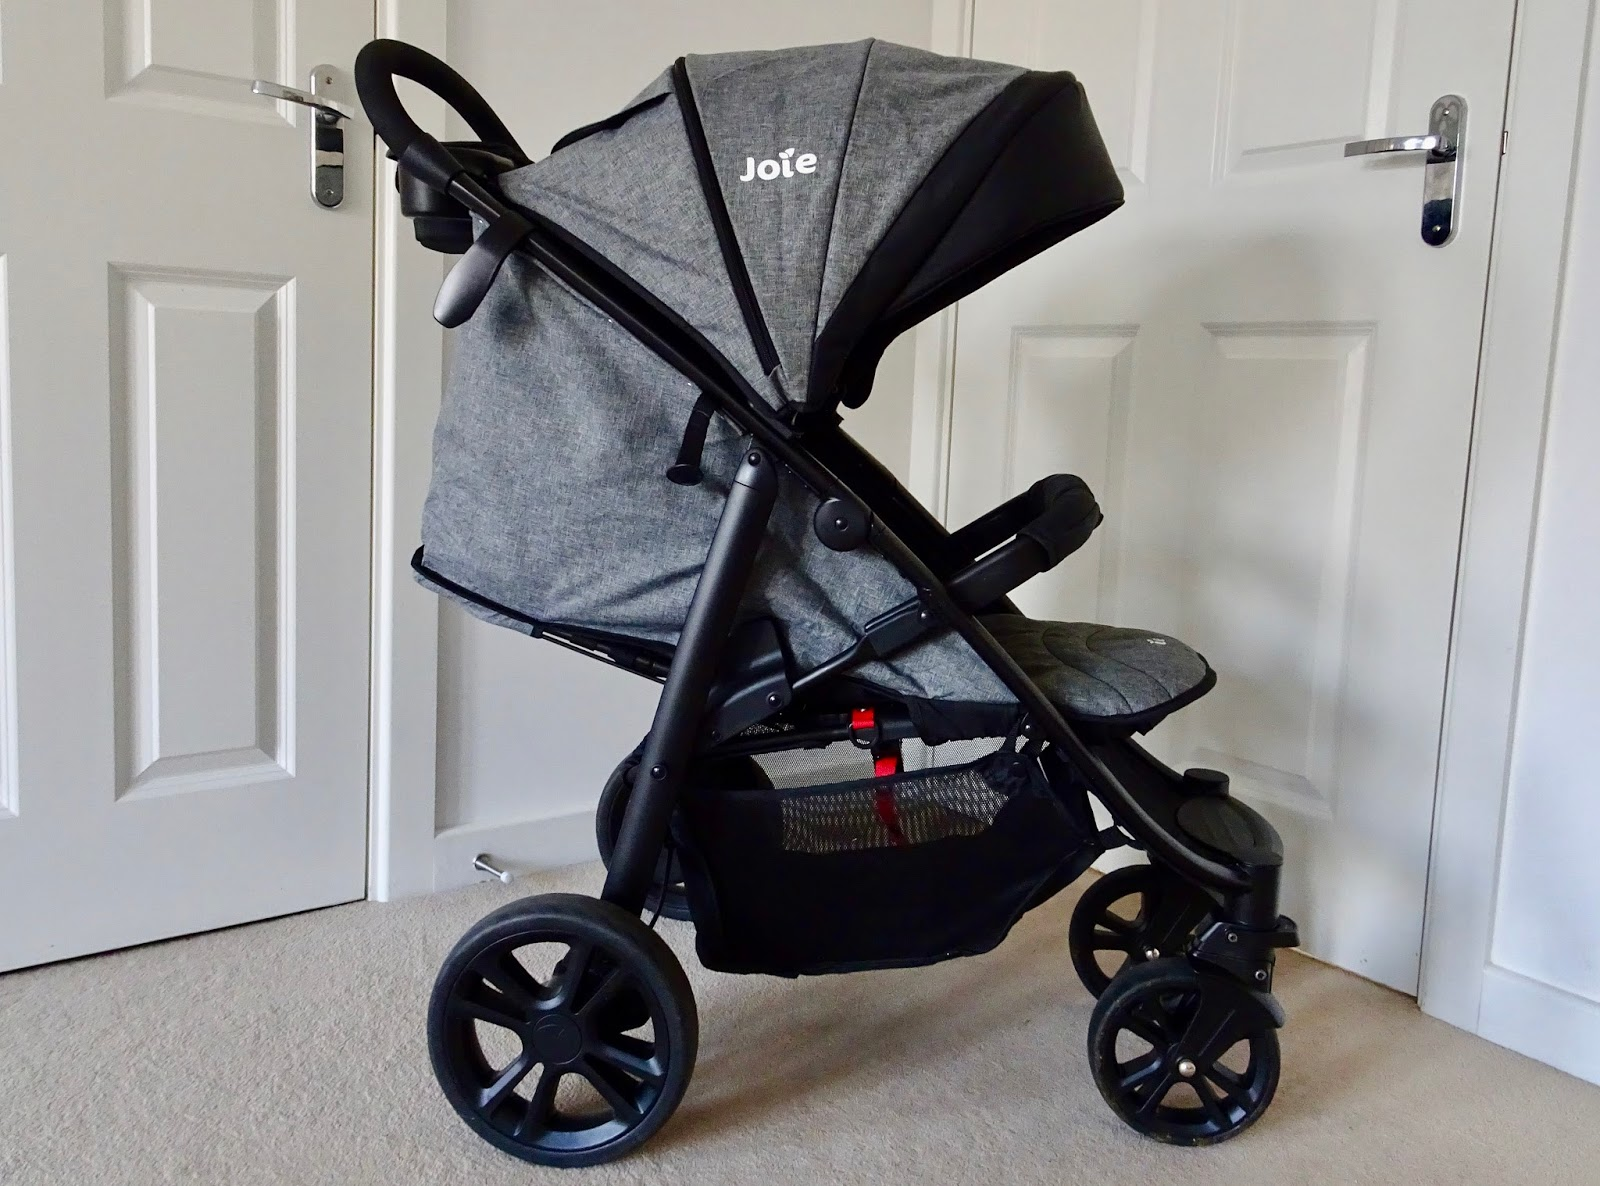 3 Wheel Prams Argos Mum S Space Joie Litetrax 4 Pushchair